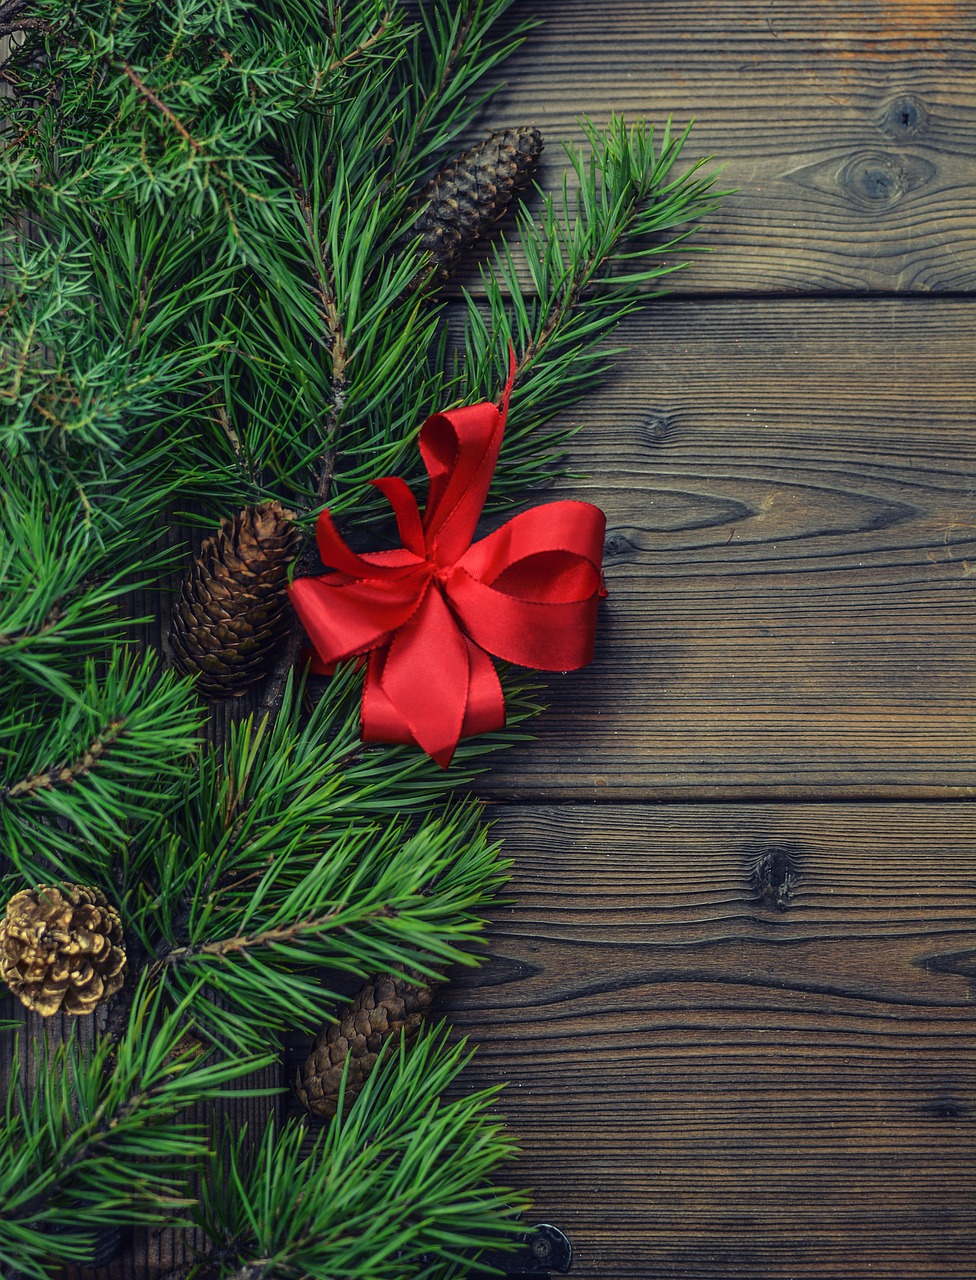 Background Christmas Pine Wooden Christmas Background Free